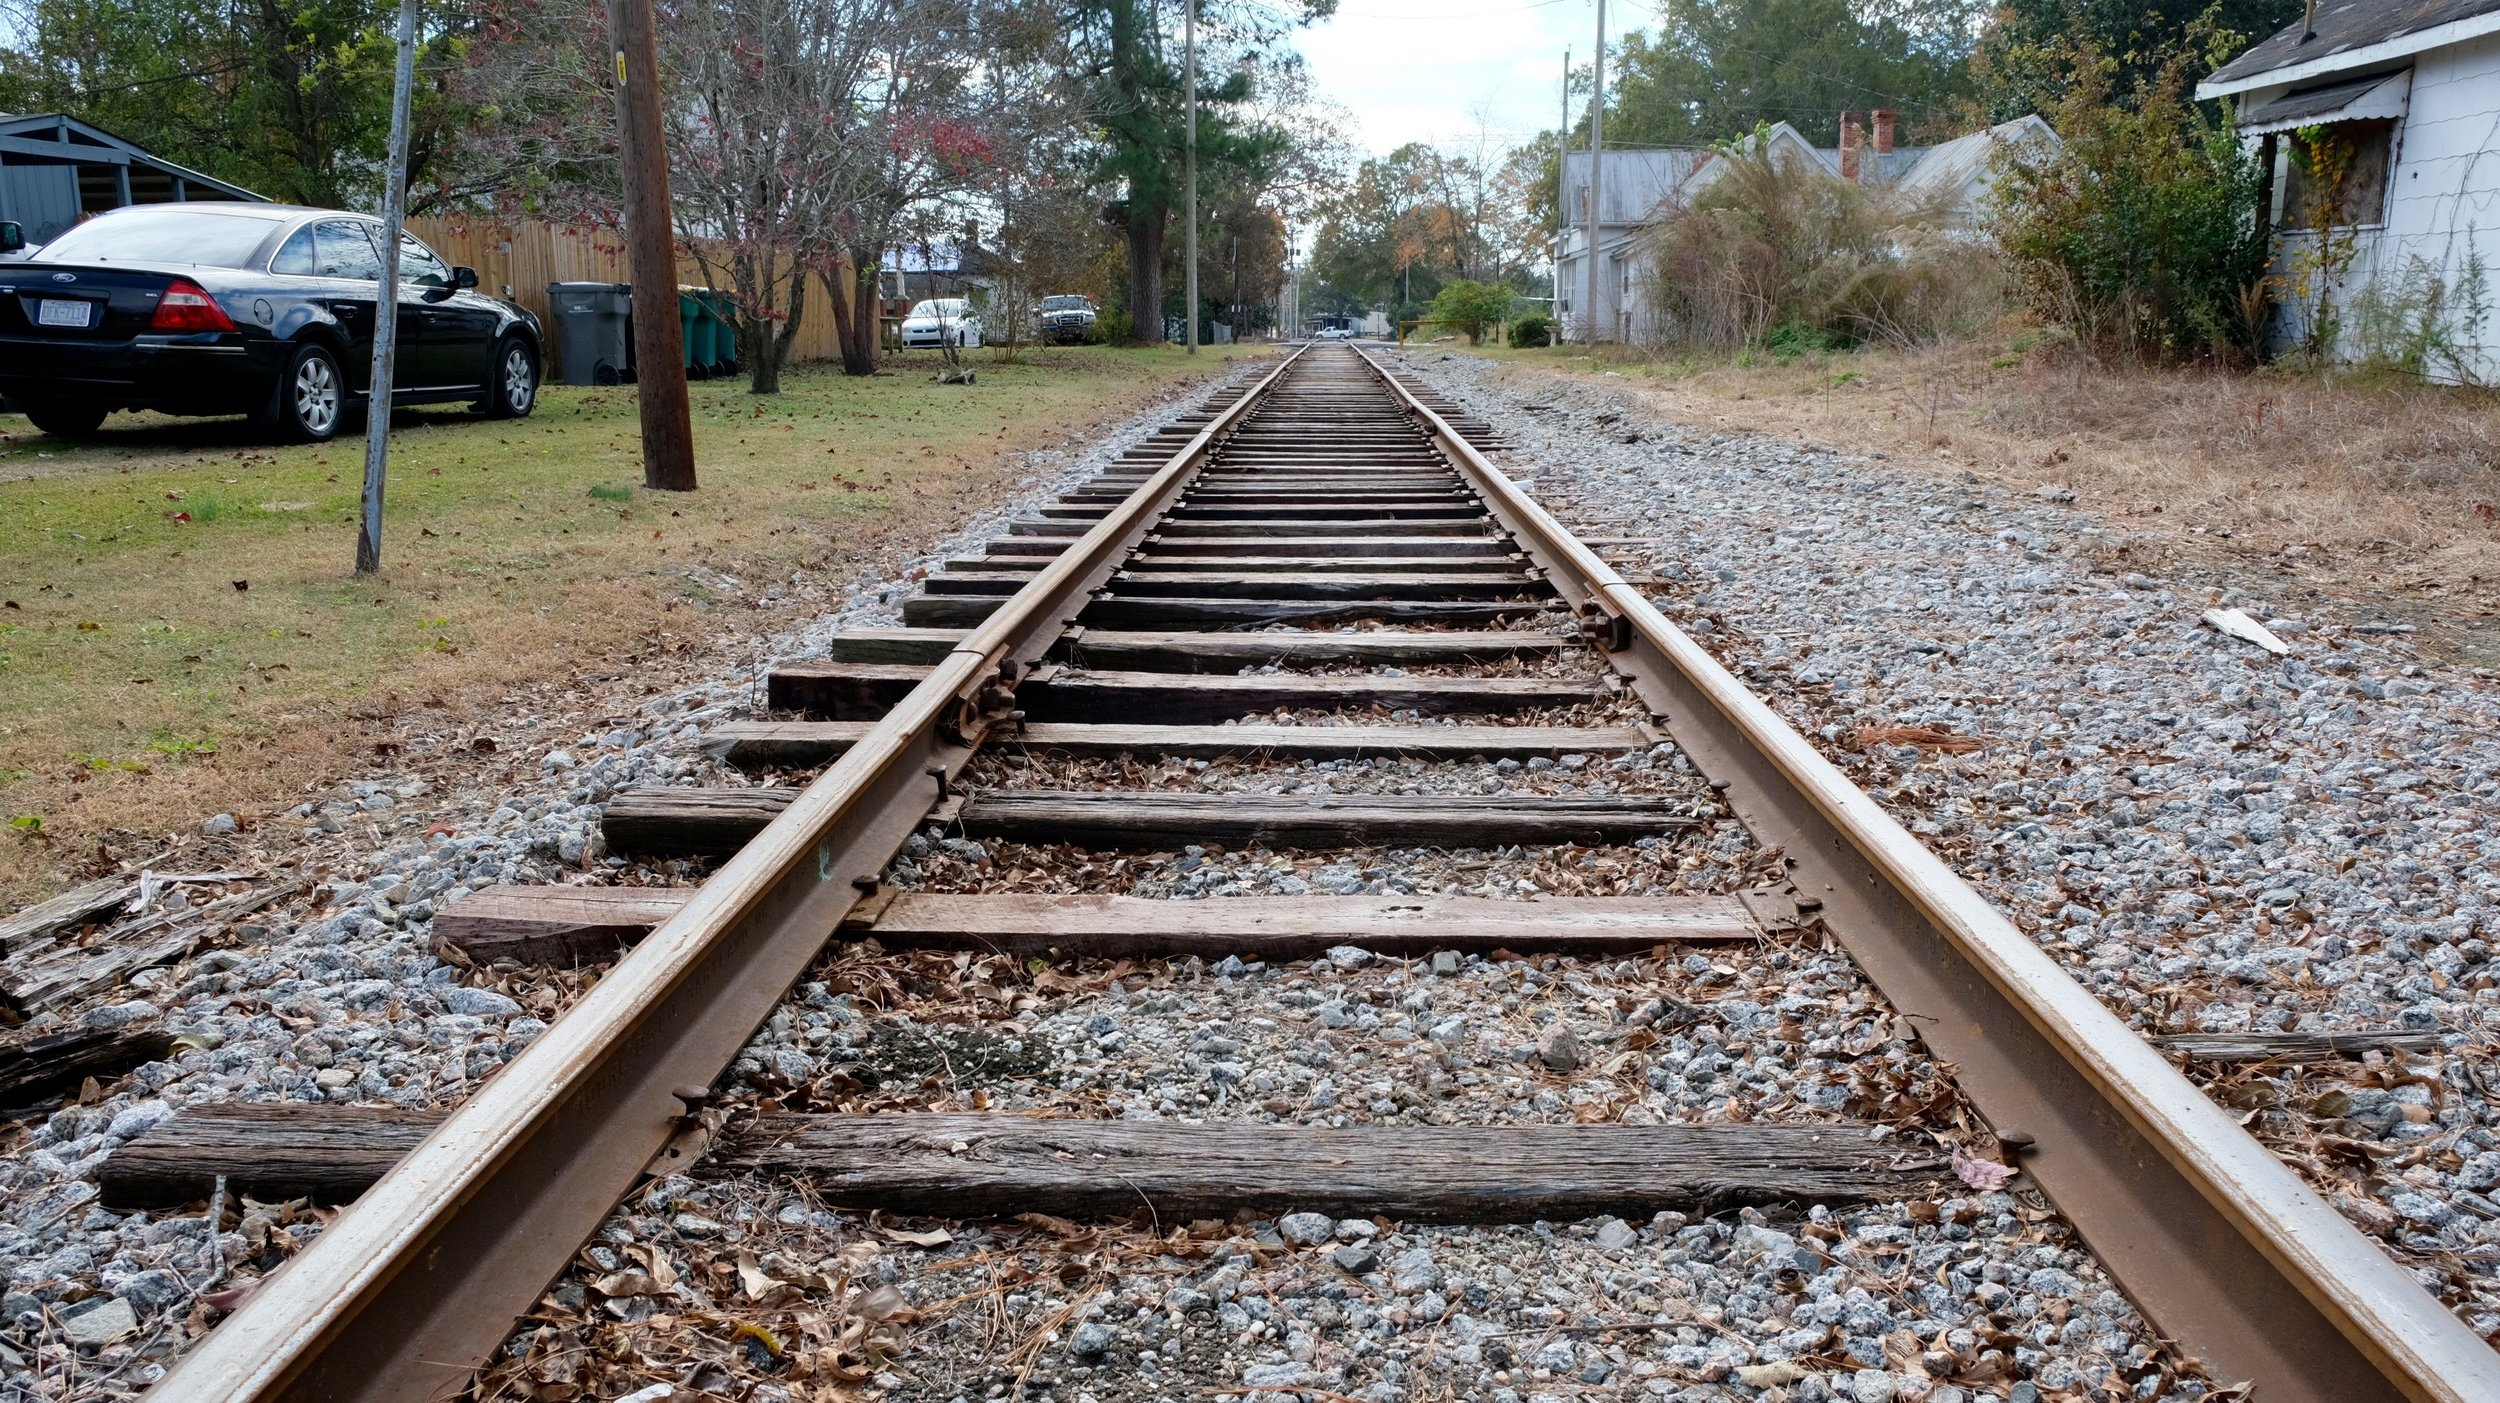 The railroad tracks separating the two sides of the neighborhood. (Photo by Russ Bowen)